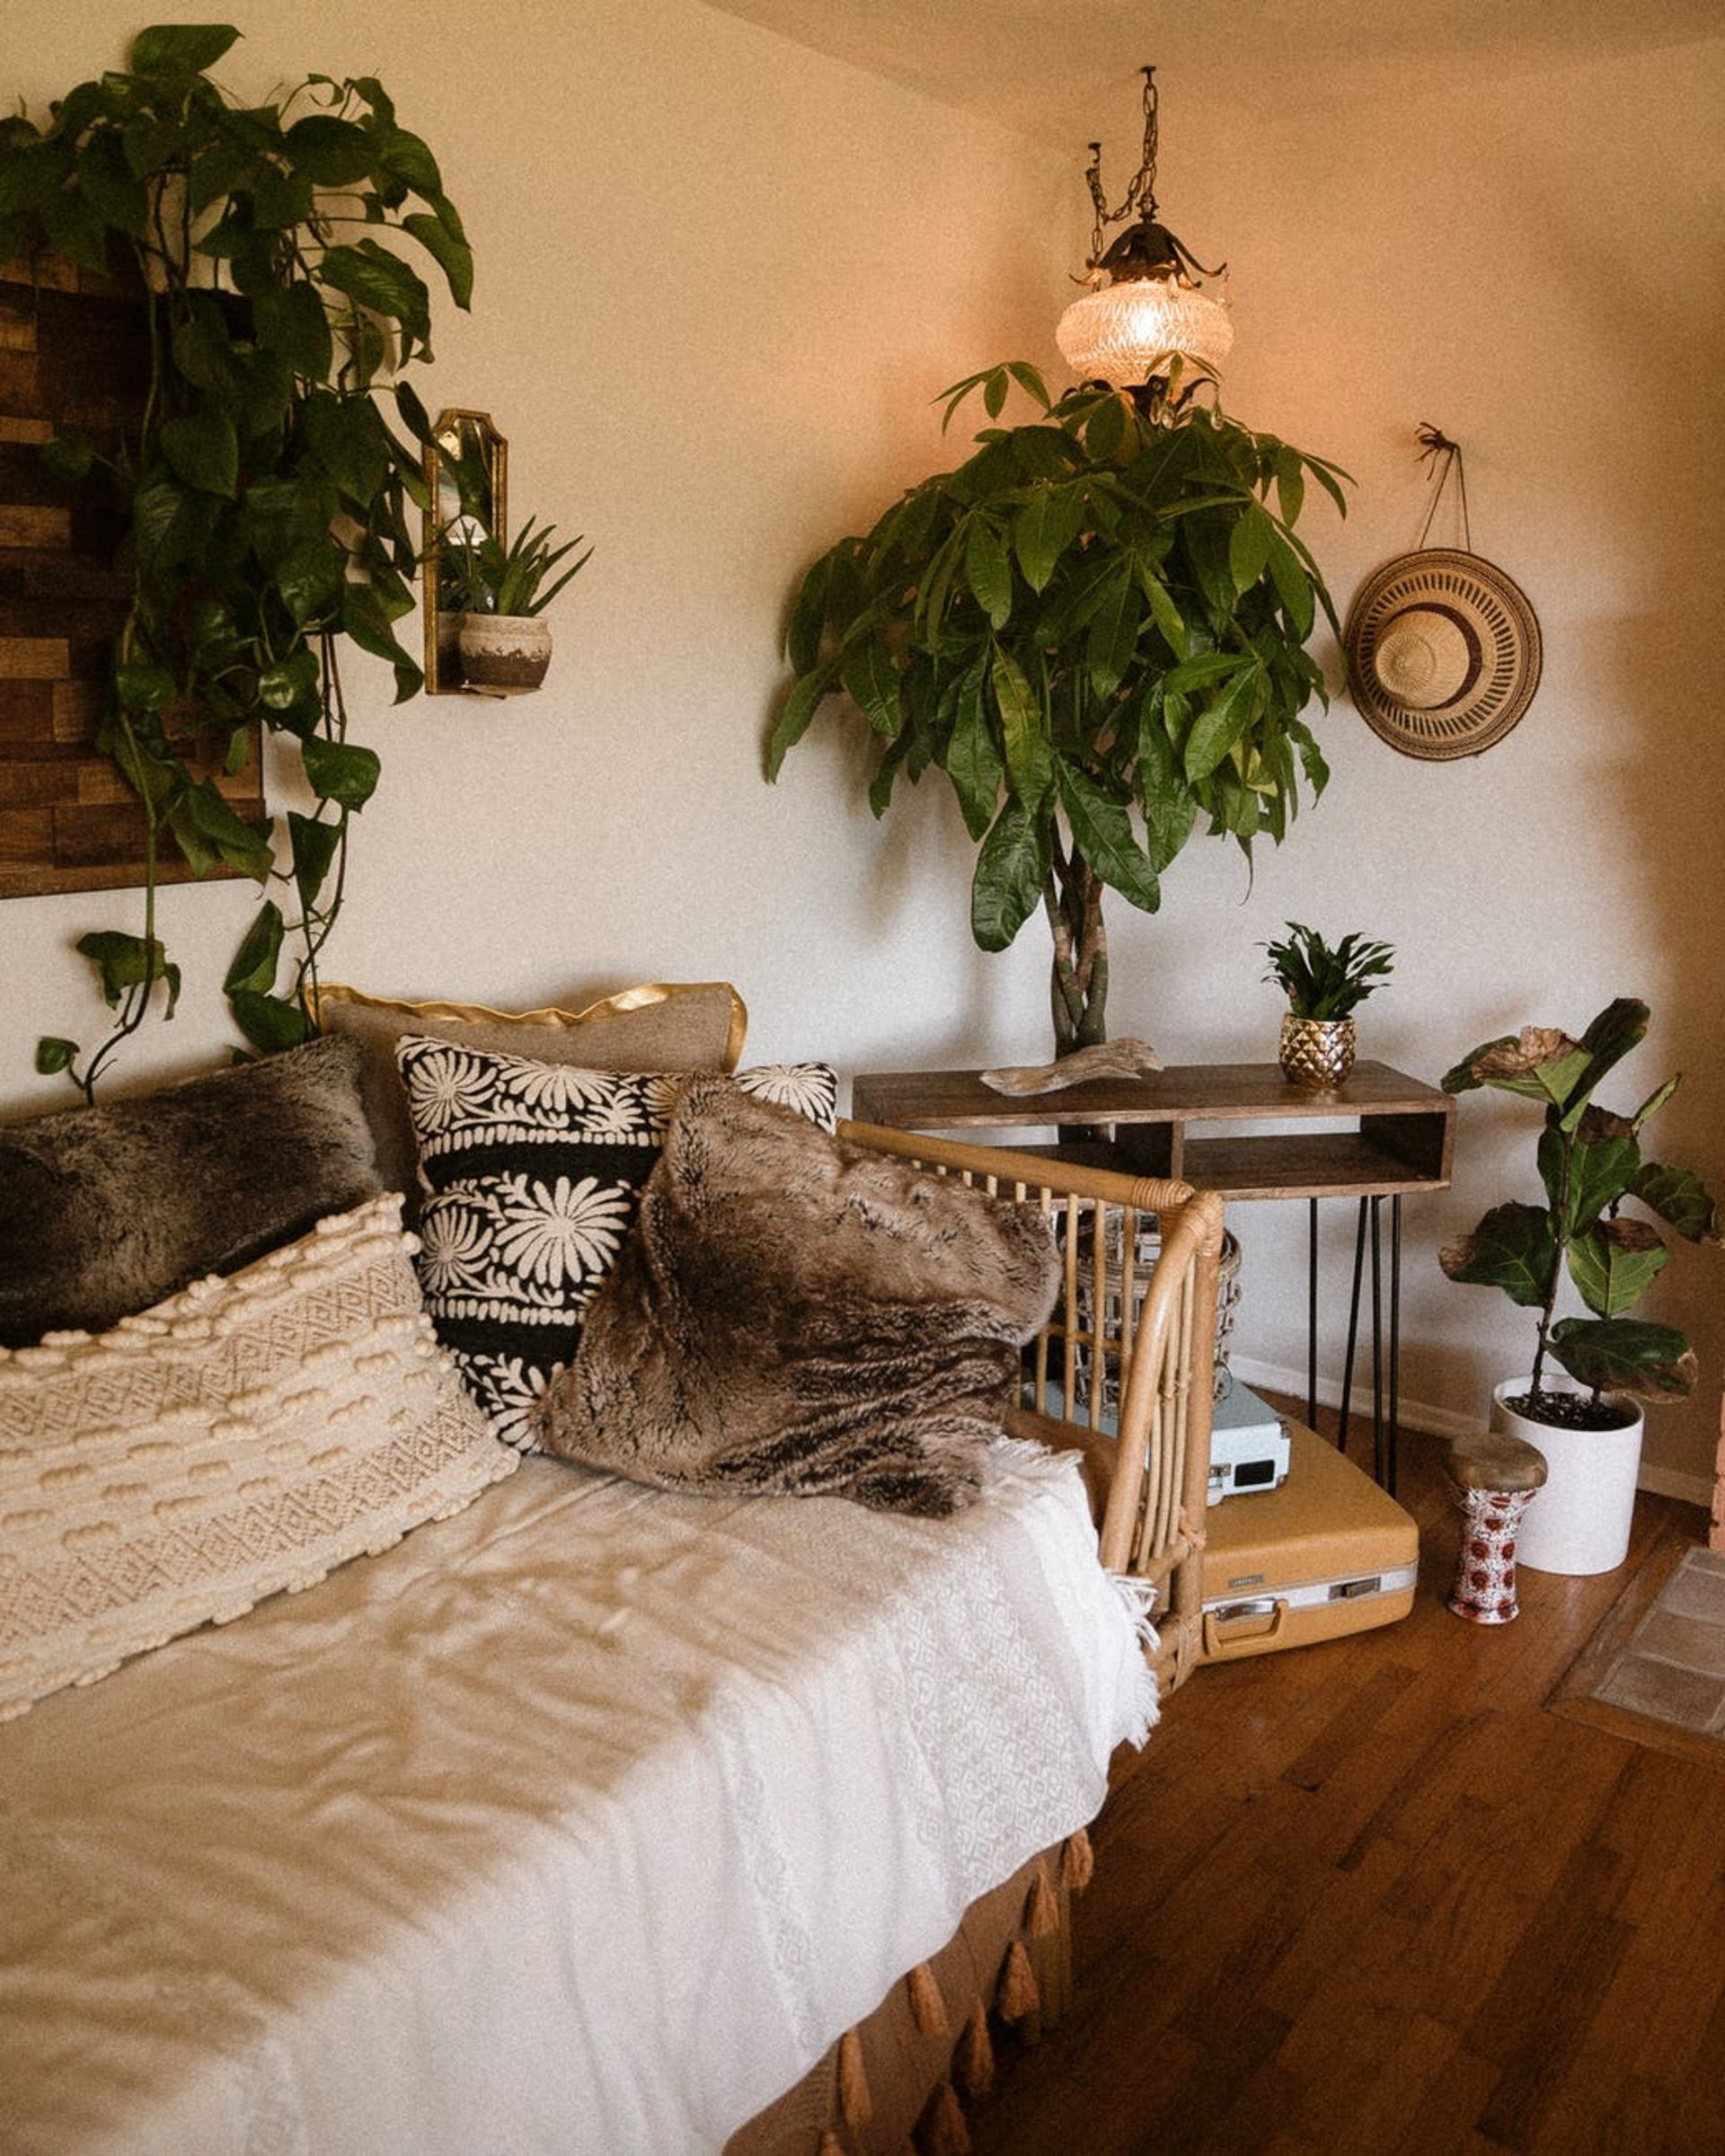 6 Ways to Maximize Your Living Space